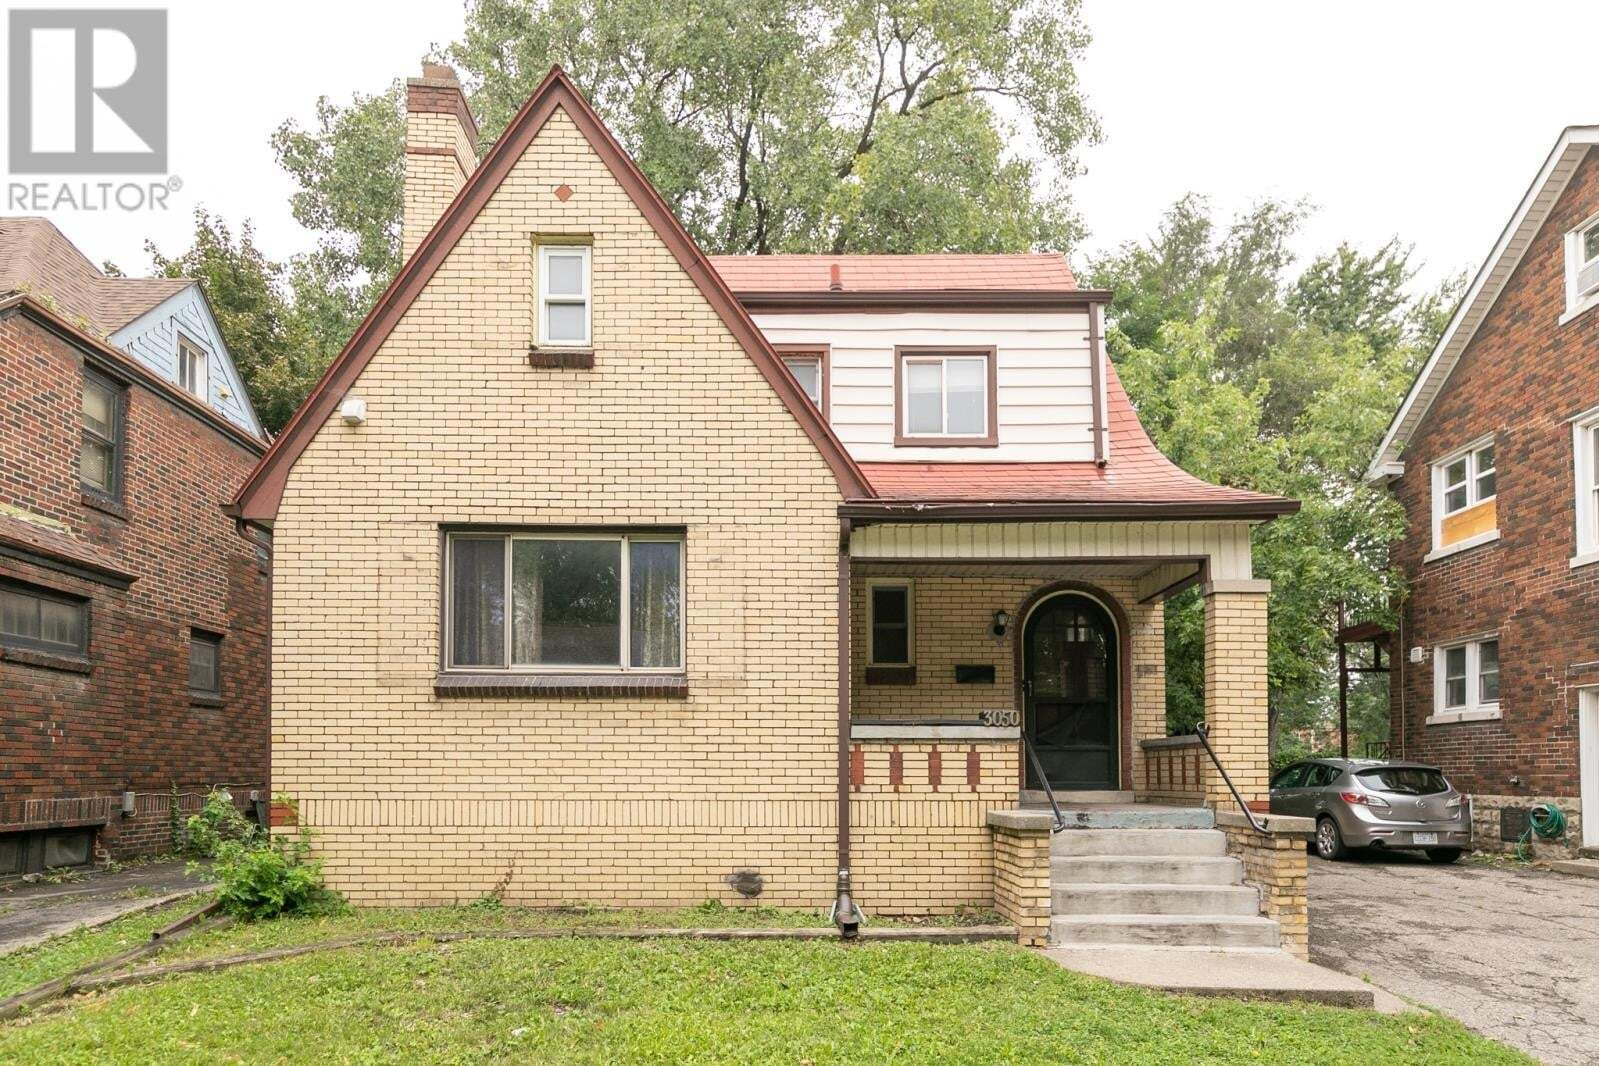 House for sale at 3050 Alexander Ave Windsor Ontario - MLS: 20009478